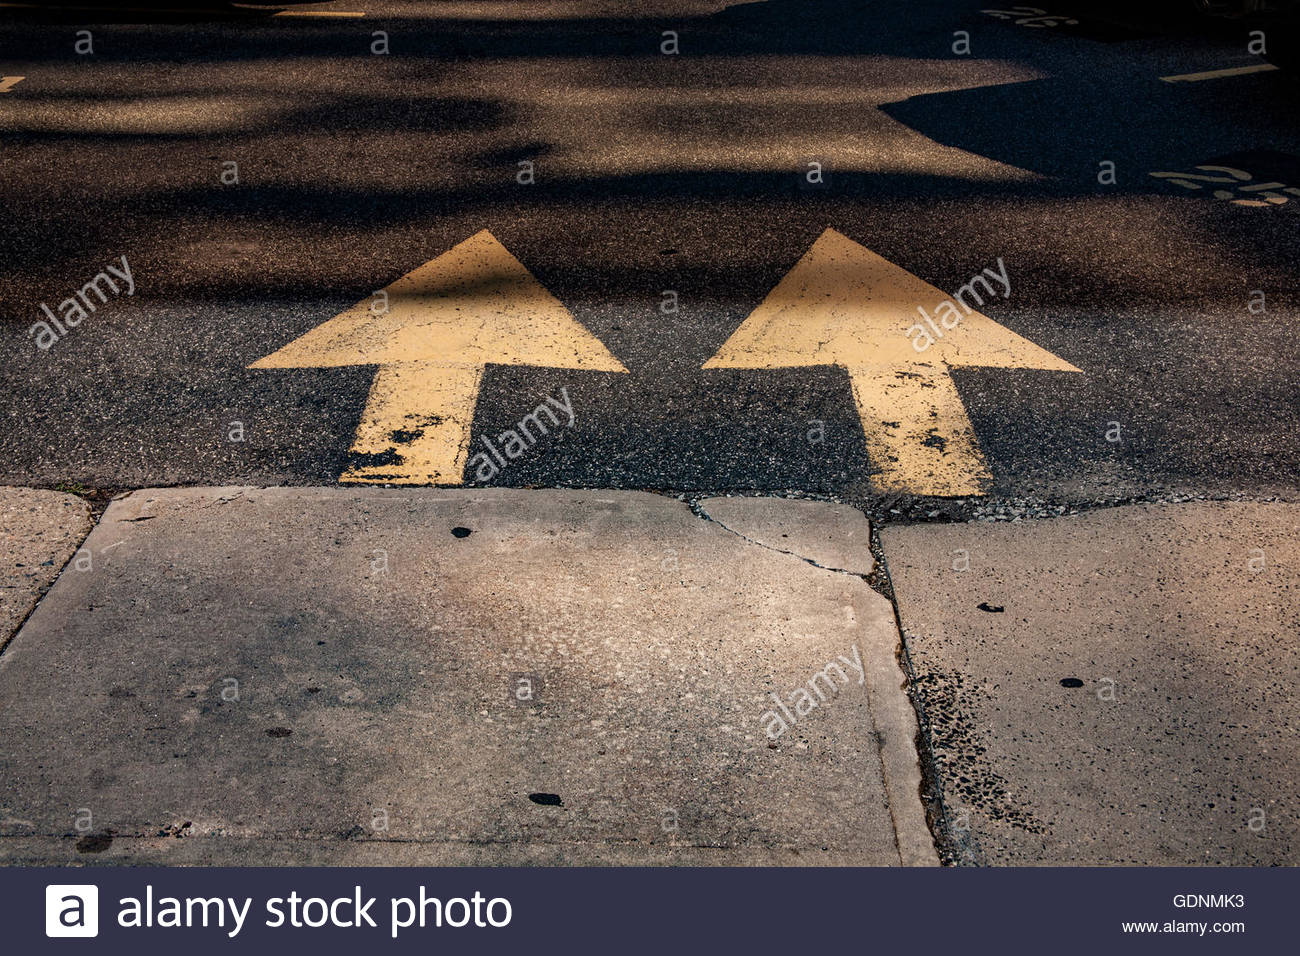 Side by side identical traffic arrows in a parking lot. - Stock Image